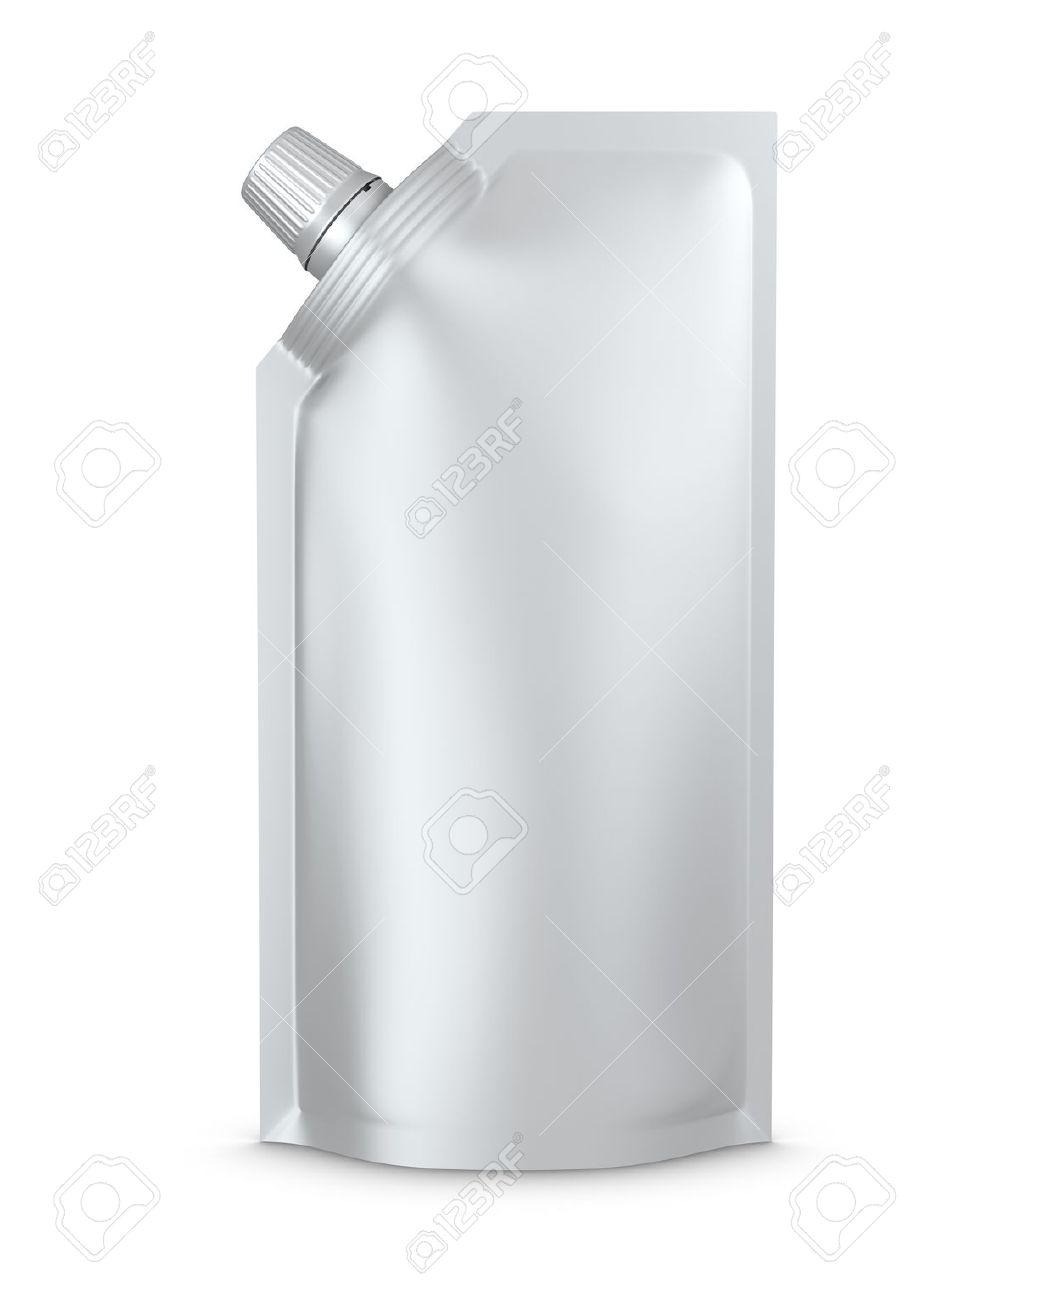 stand-up spout pouch with cap isolated Stock Photo - 7624803